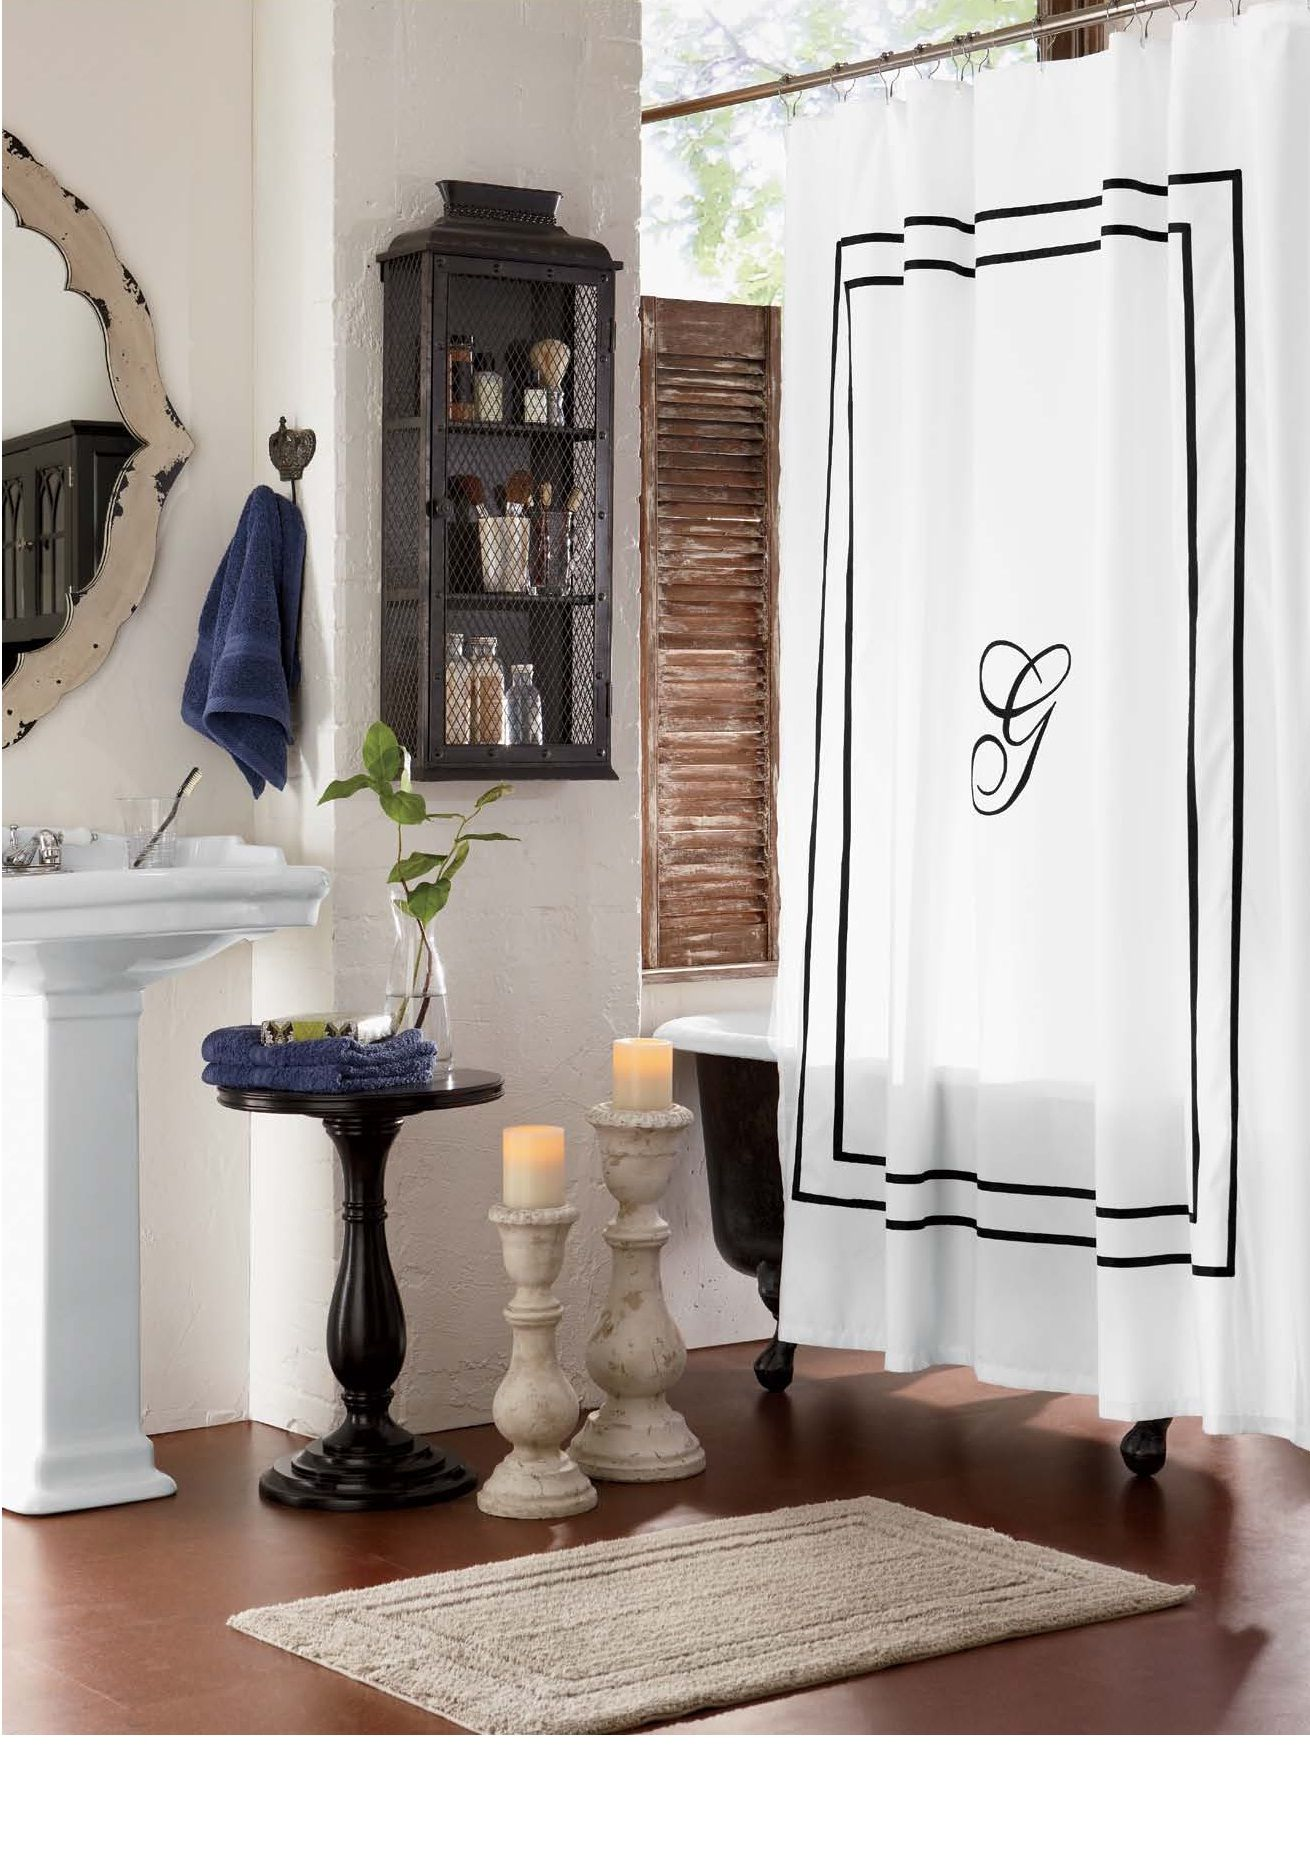 Monogrammed Shower Curtain - Monogrammed Bath Accessories ...